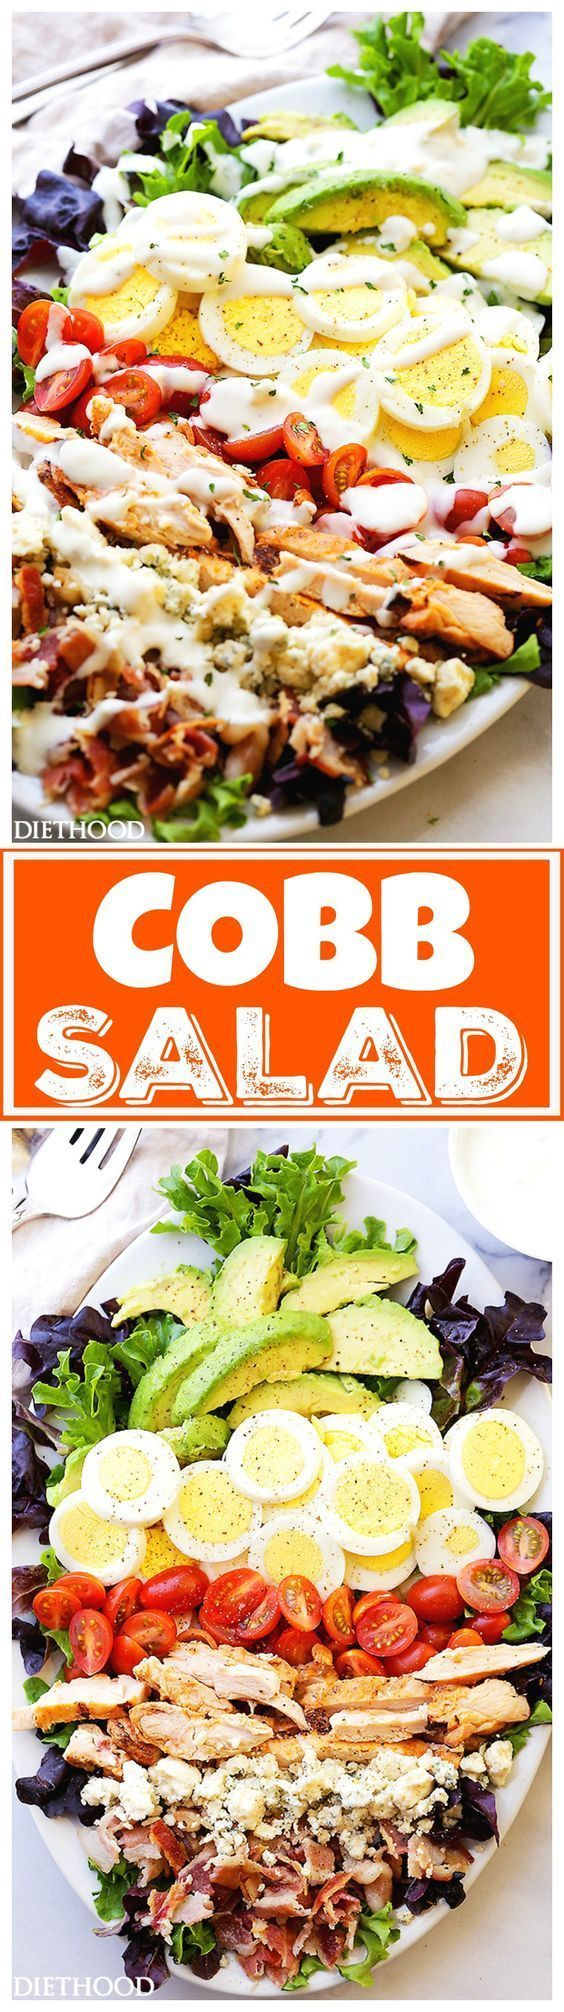 Cobb Salad Recipe - This classic American main-dish salad is packed with chicken, avocado, sweet tomatoes, crunchy bacon, blue cheese, and eggs, all topped with a lightened-up blue cheese dressing.::